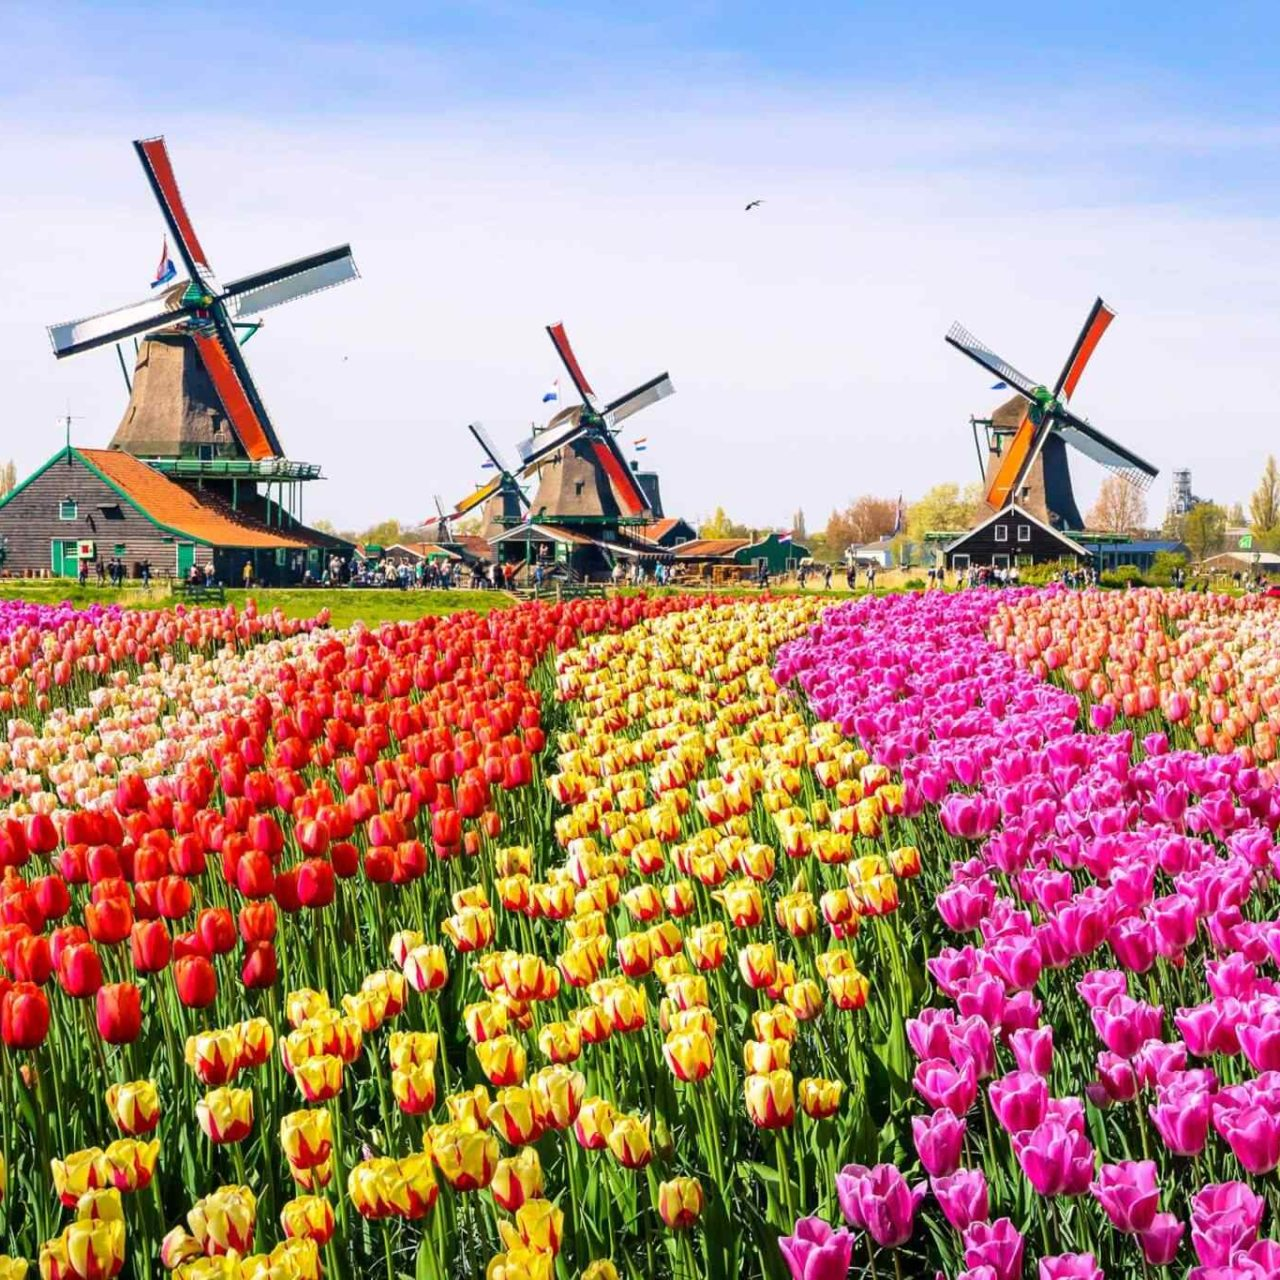 https://www.banitours.com/wp-content/uploads/2018/09/destination-netherlands-01-1280x1280.jpg